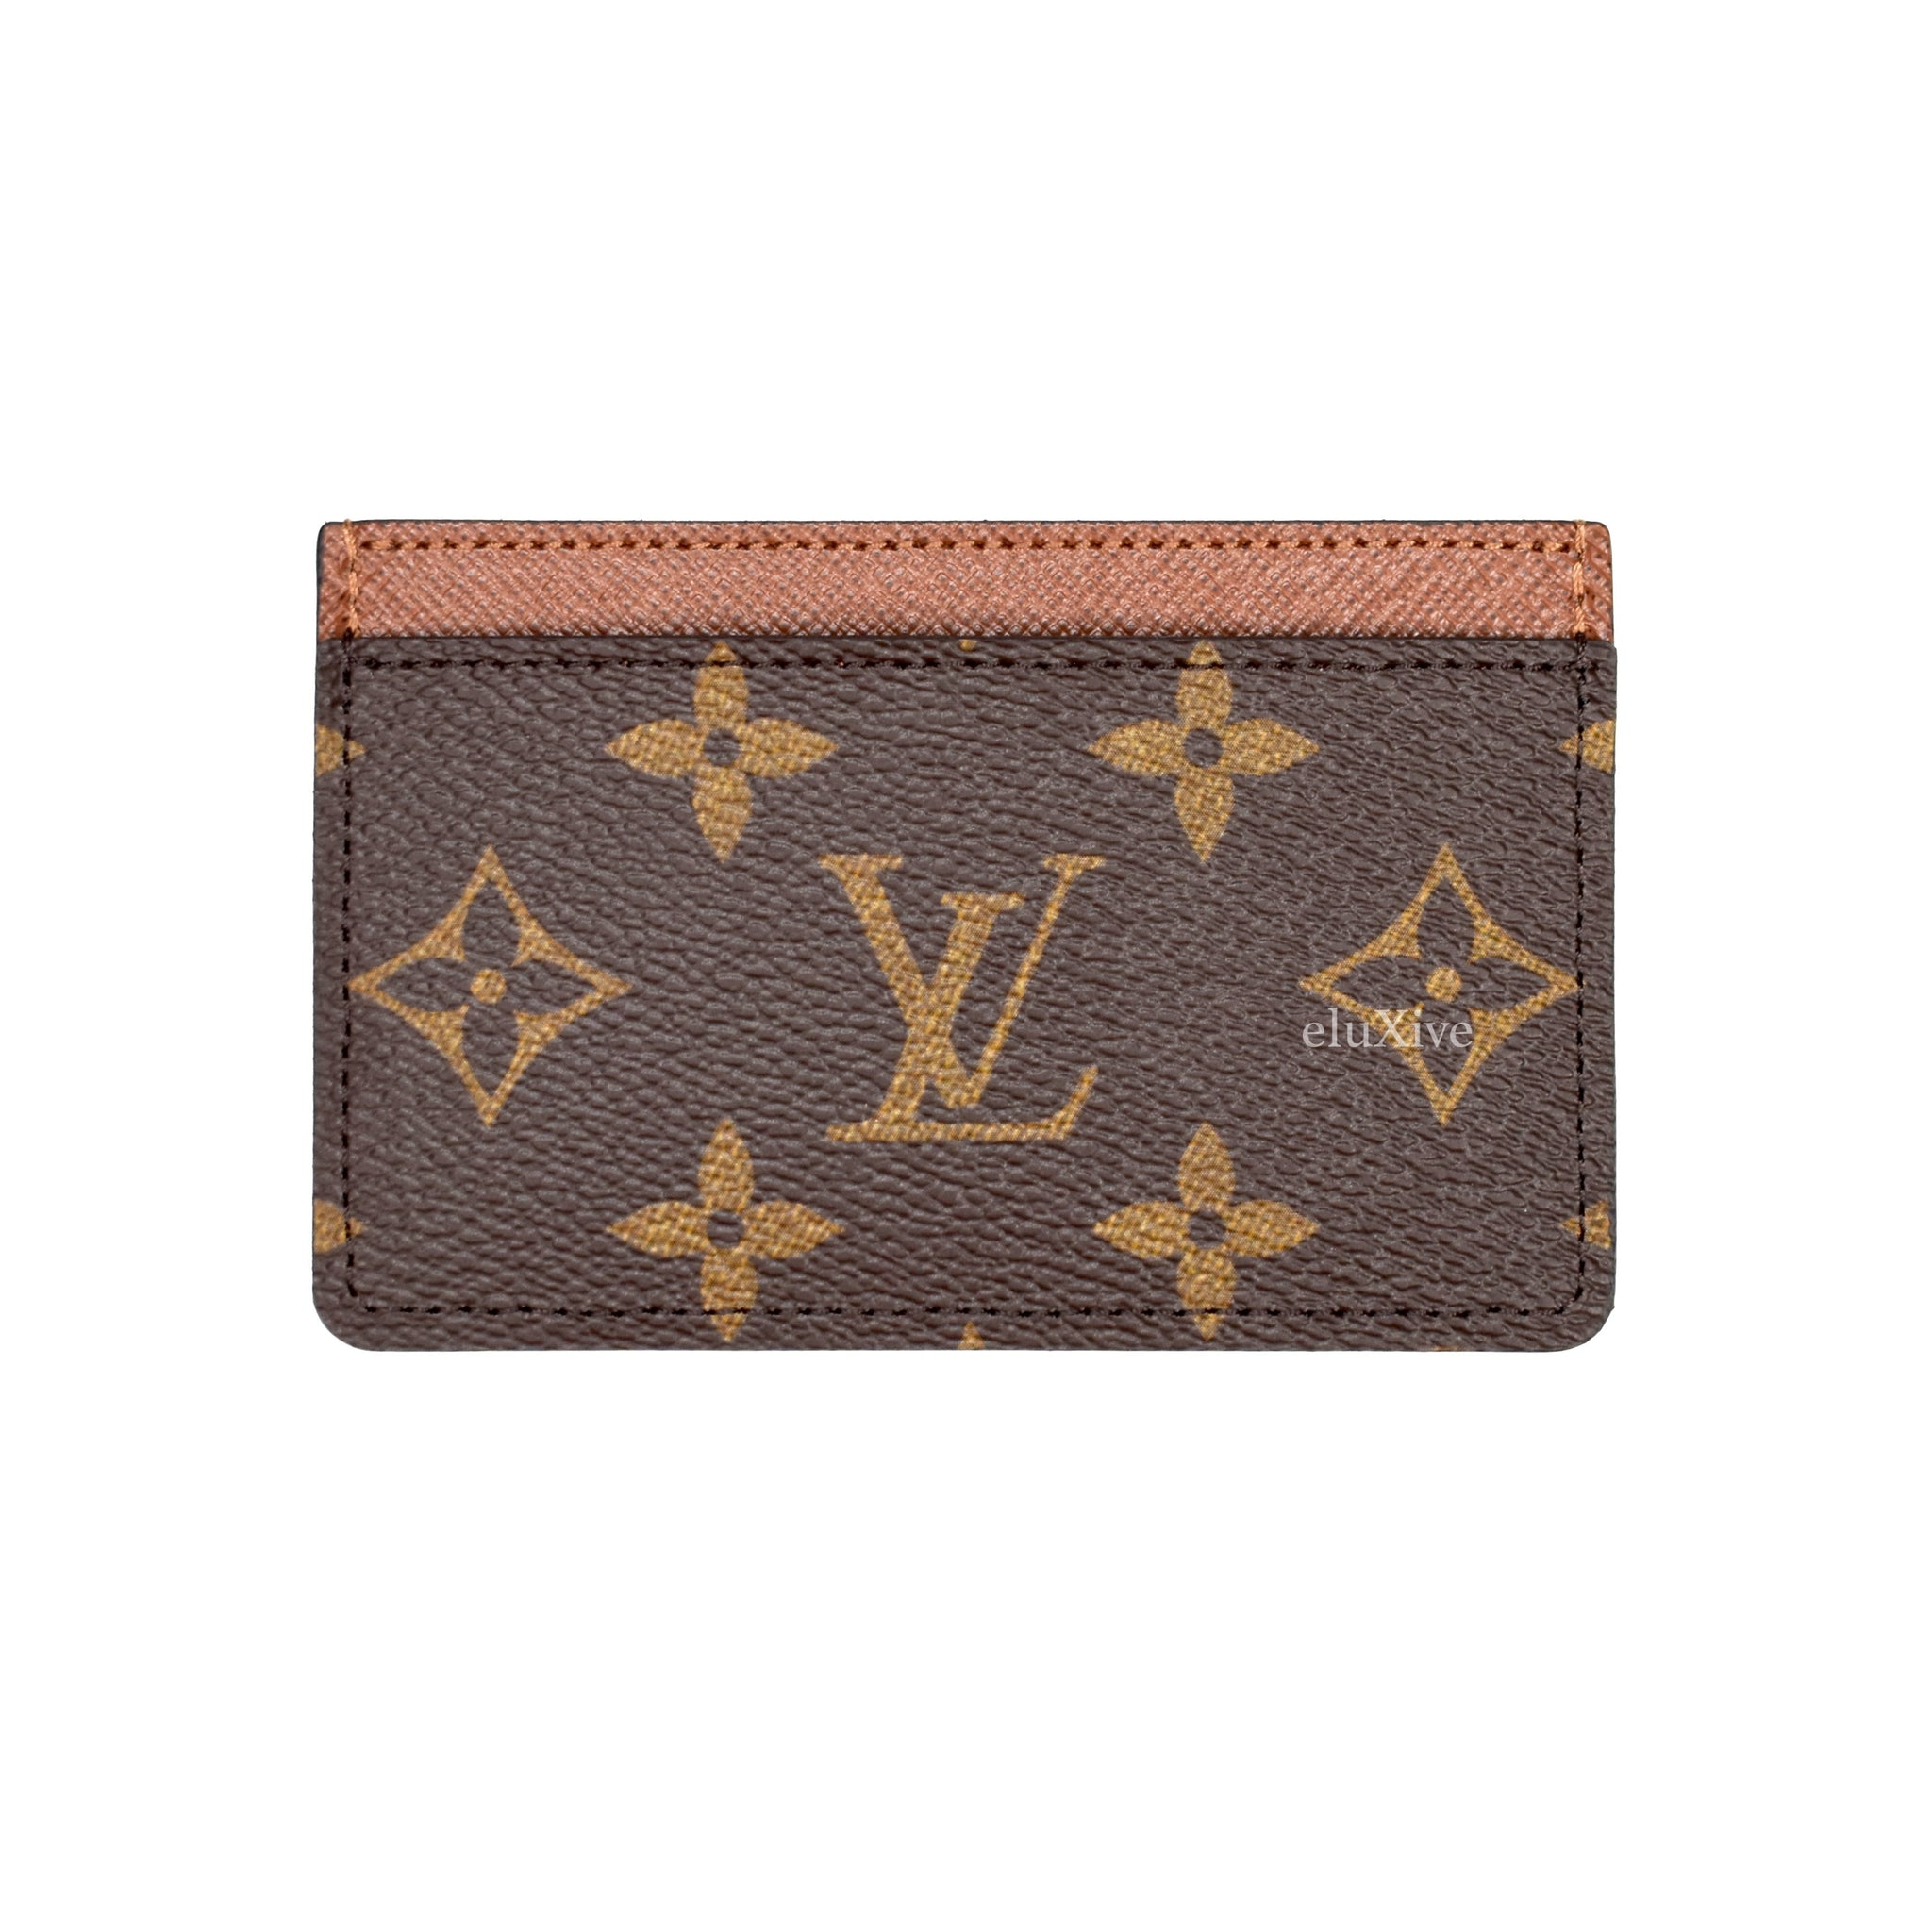 Louis Vuitton - Monogram Card Holder